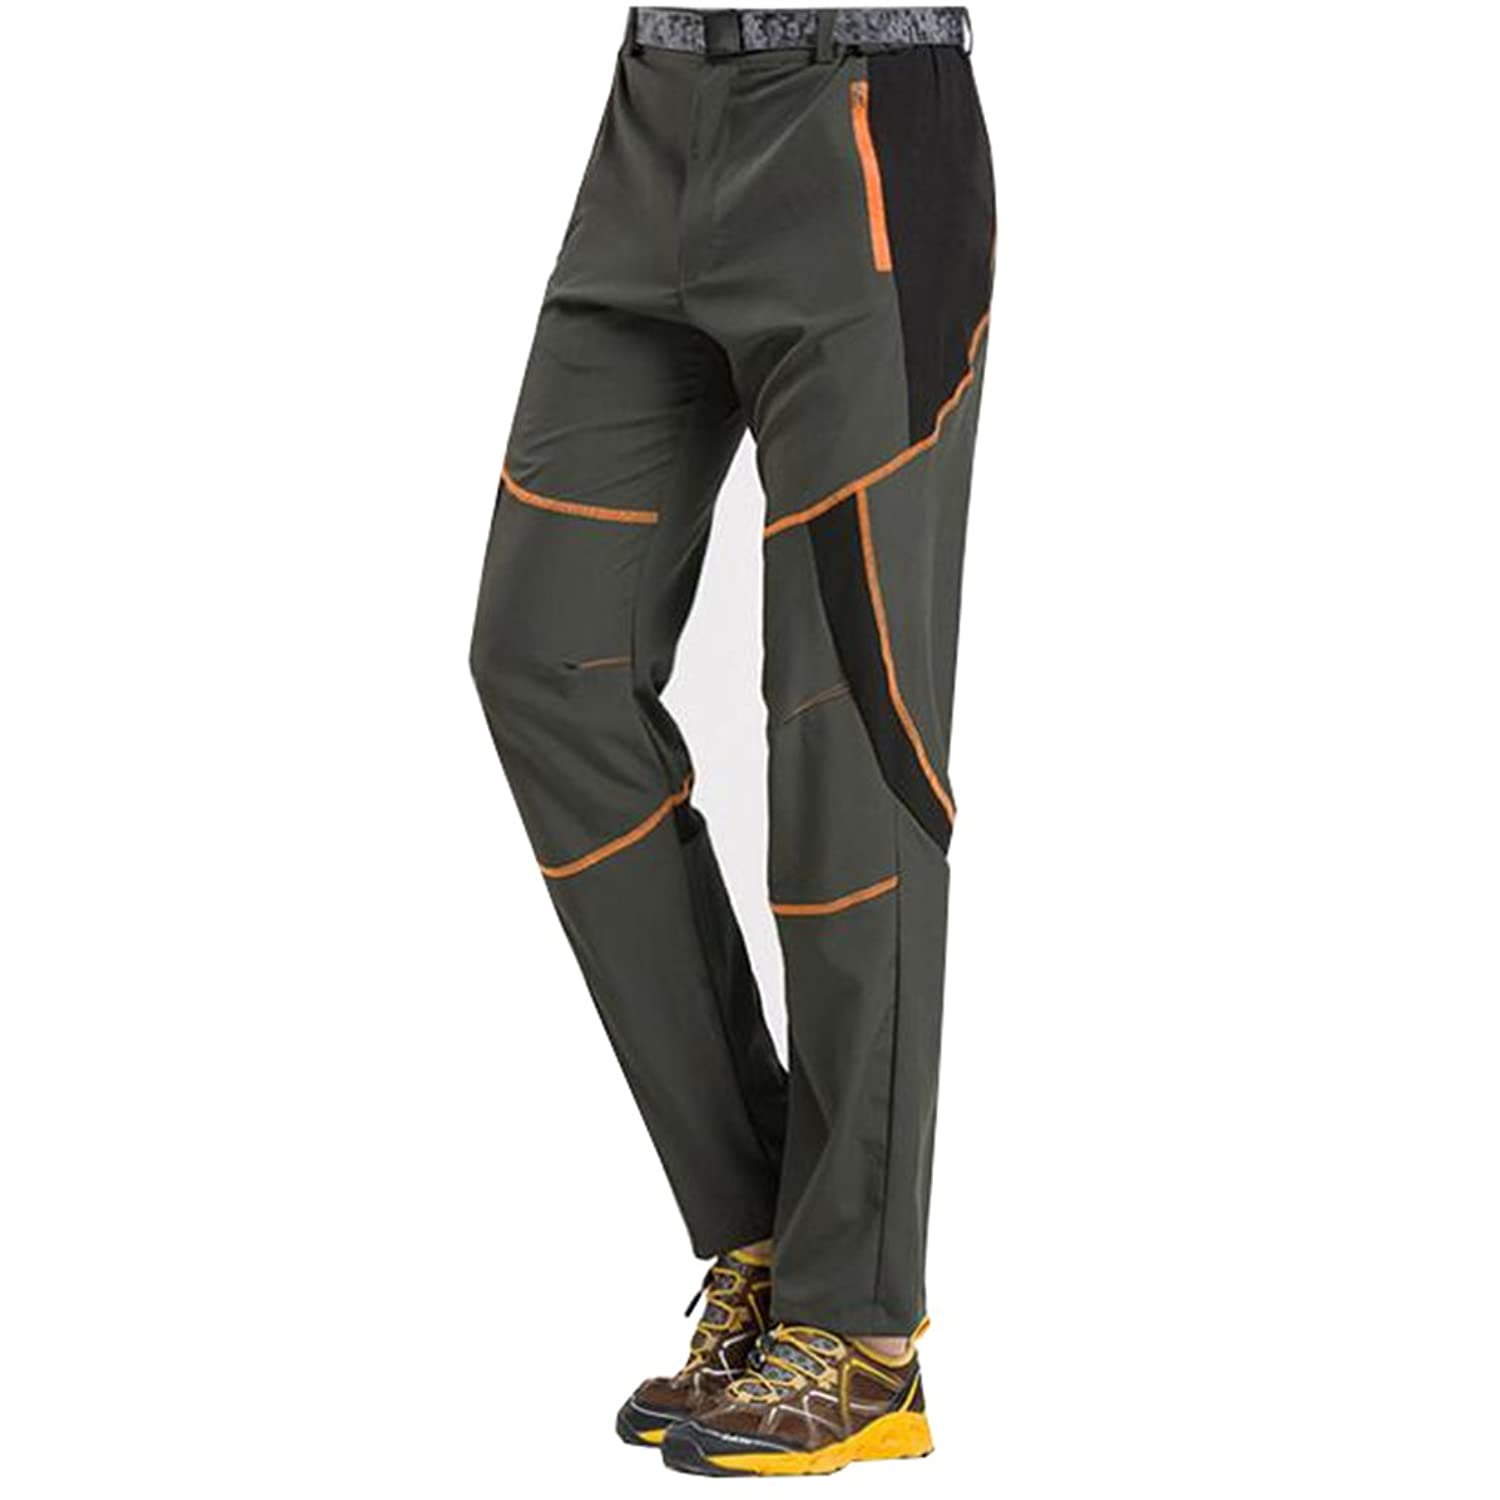 84835082fe887 outlet Kayla qin Mens Womens Quick Dry Pants Waterproof Lightweight Cargo  Hiking Sports Outdoors Long